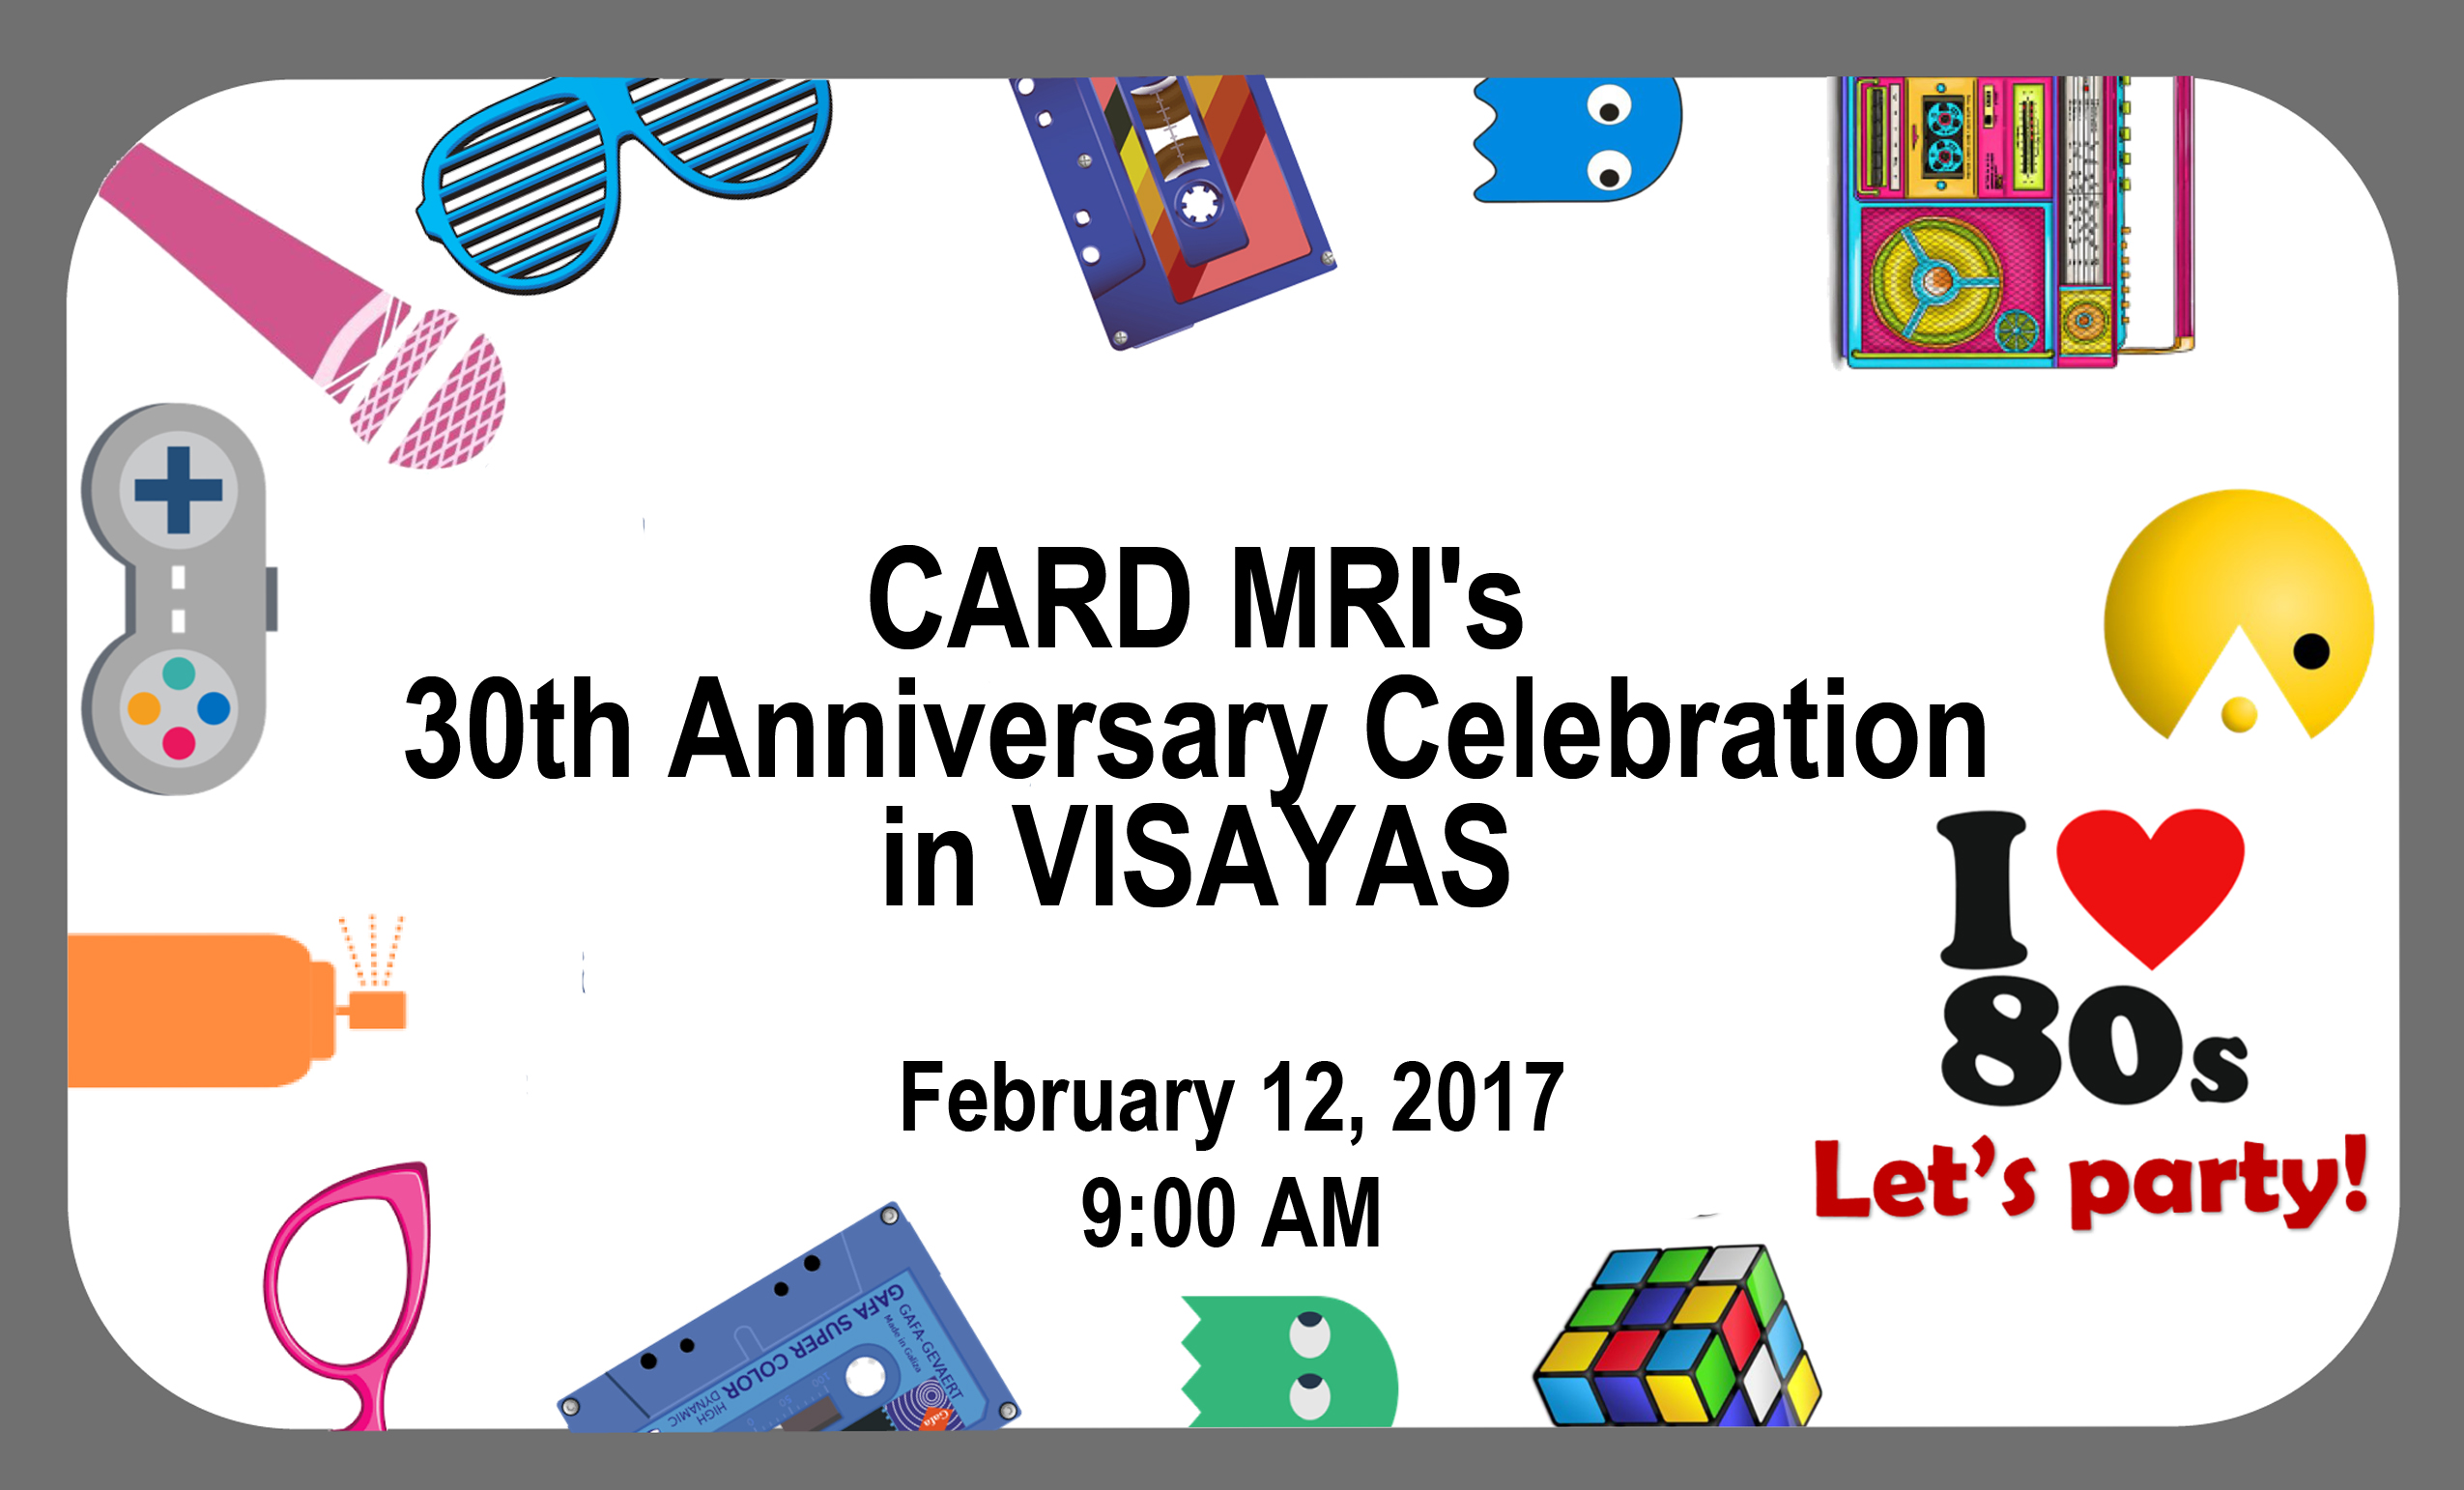 CARD MRI's 30th Anniversary Celebration in Visayas